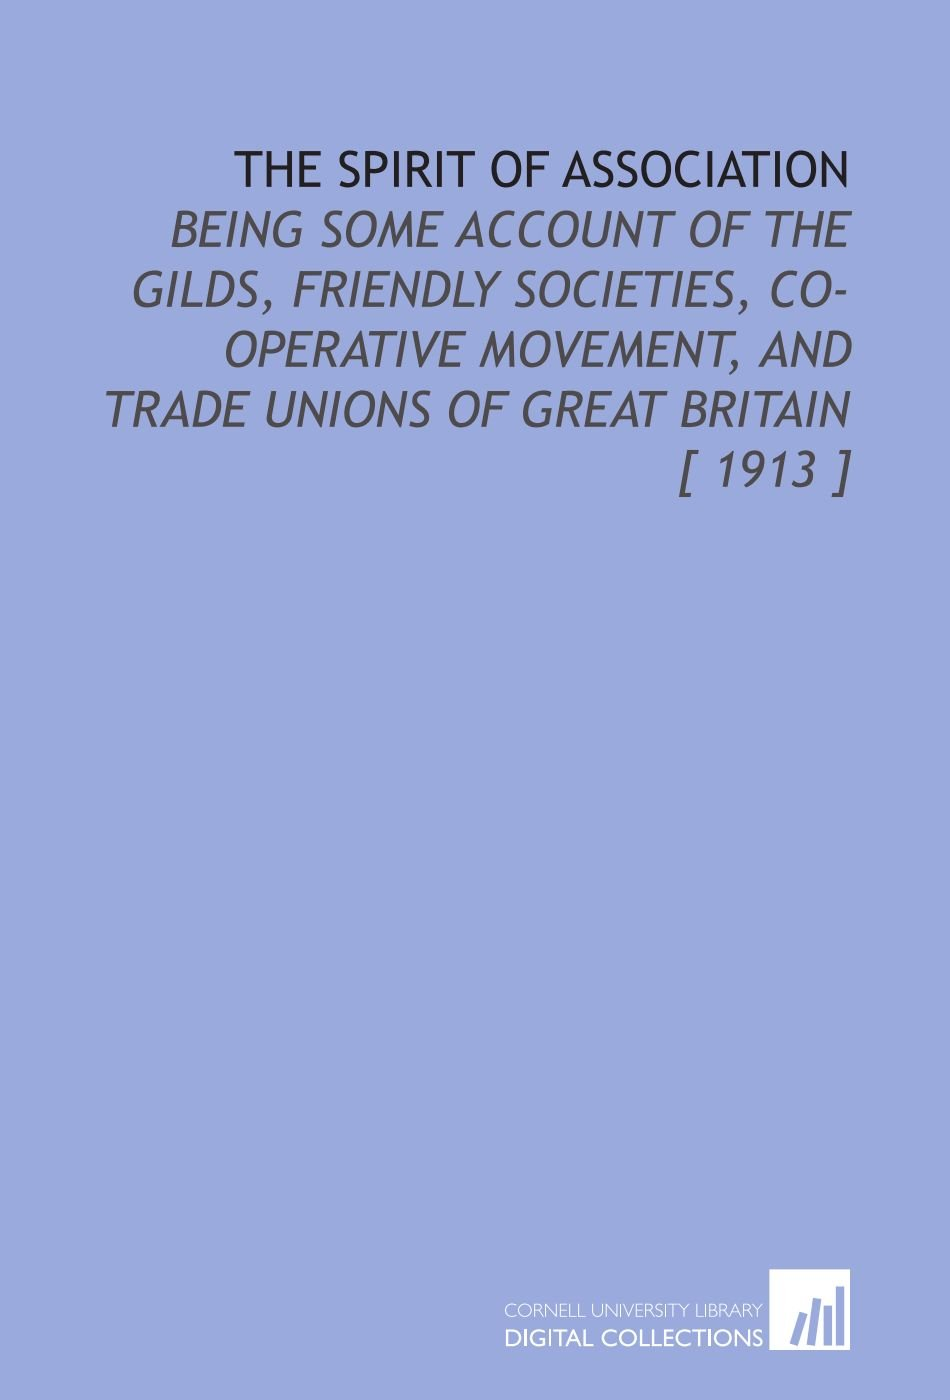 Download The Spirit of Association: Being Some Account of the Gilds, Friendly Societies, Co-Operative Movement, and Trade Unions of Great Britain [ 1913 ] ebook